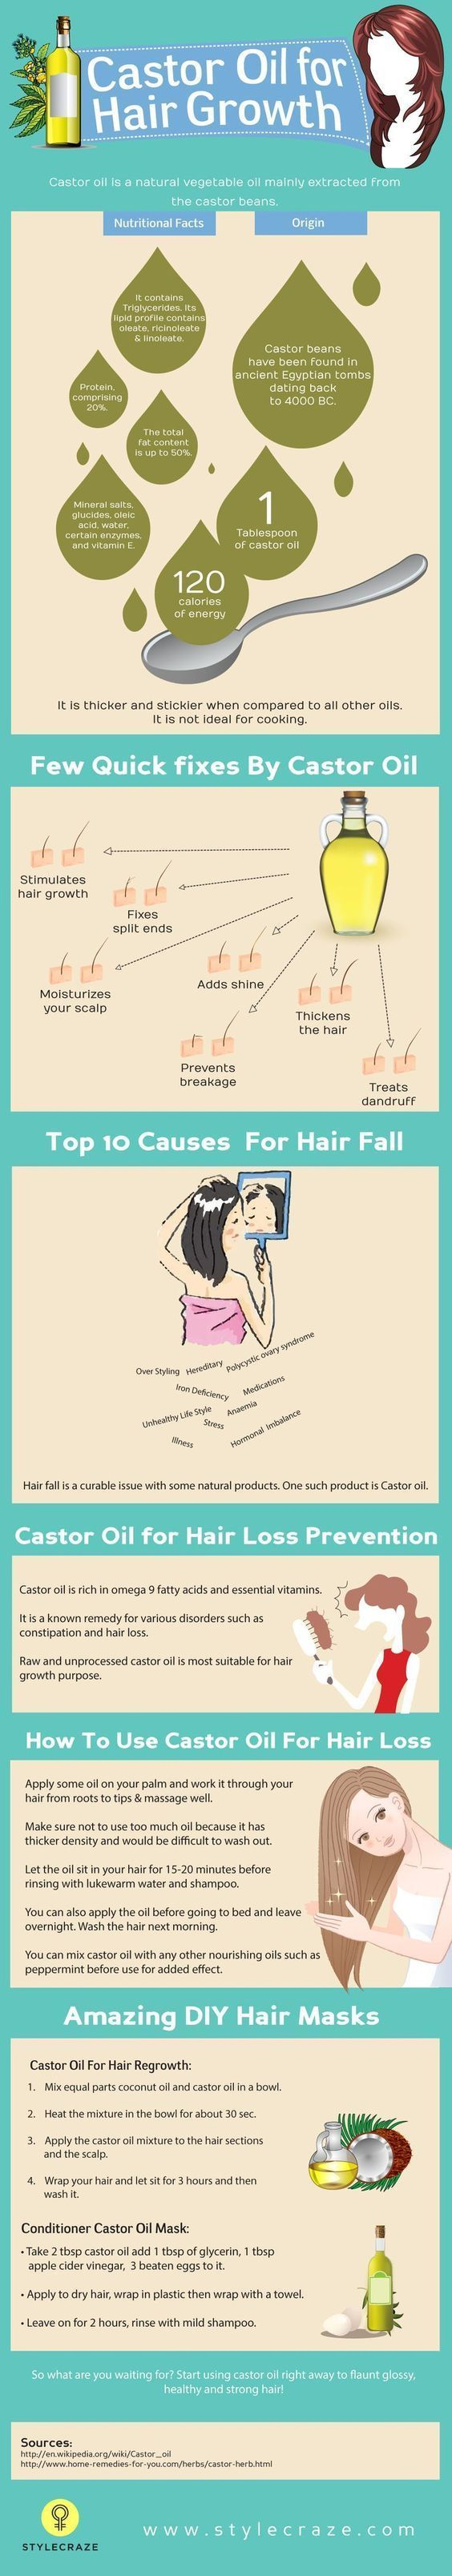 best got it images on pinterest hair care health and soaps